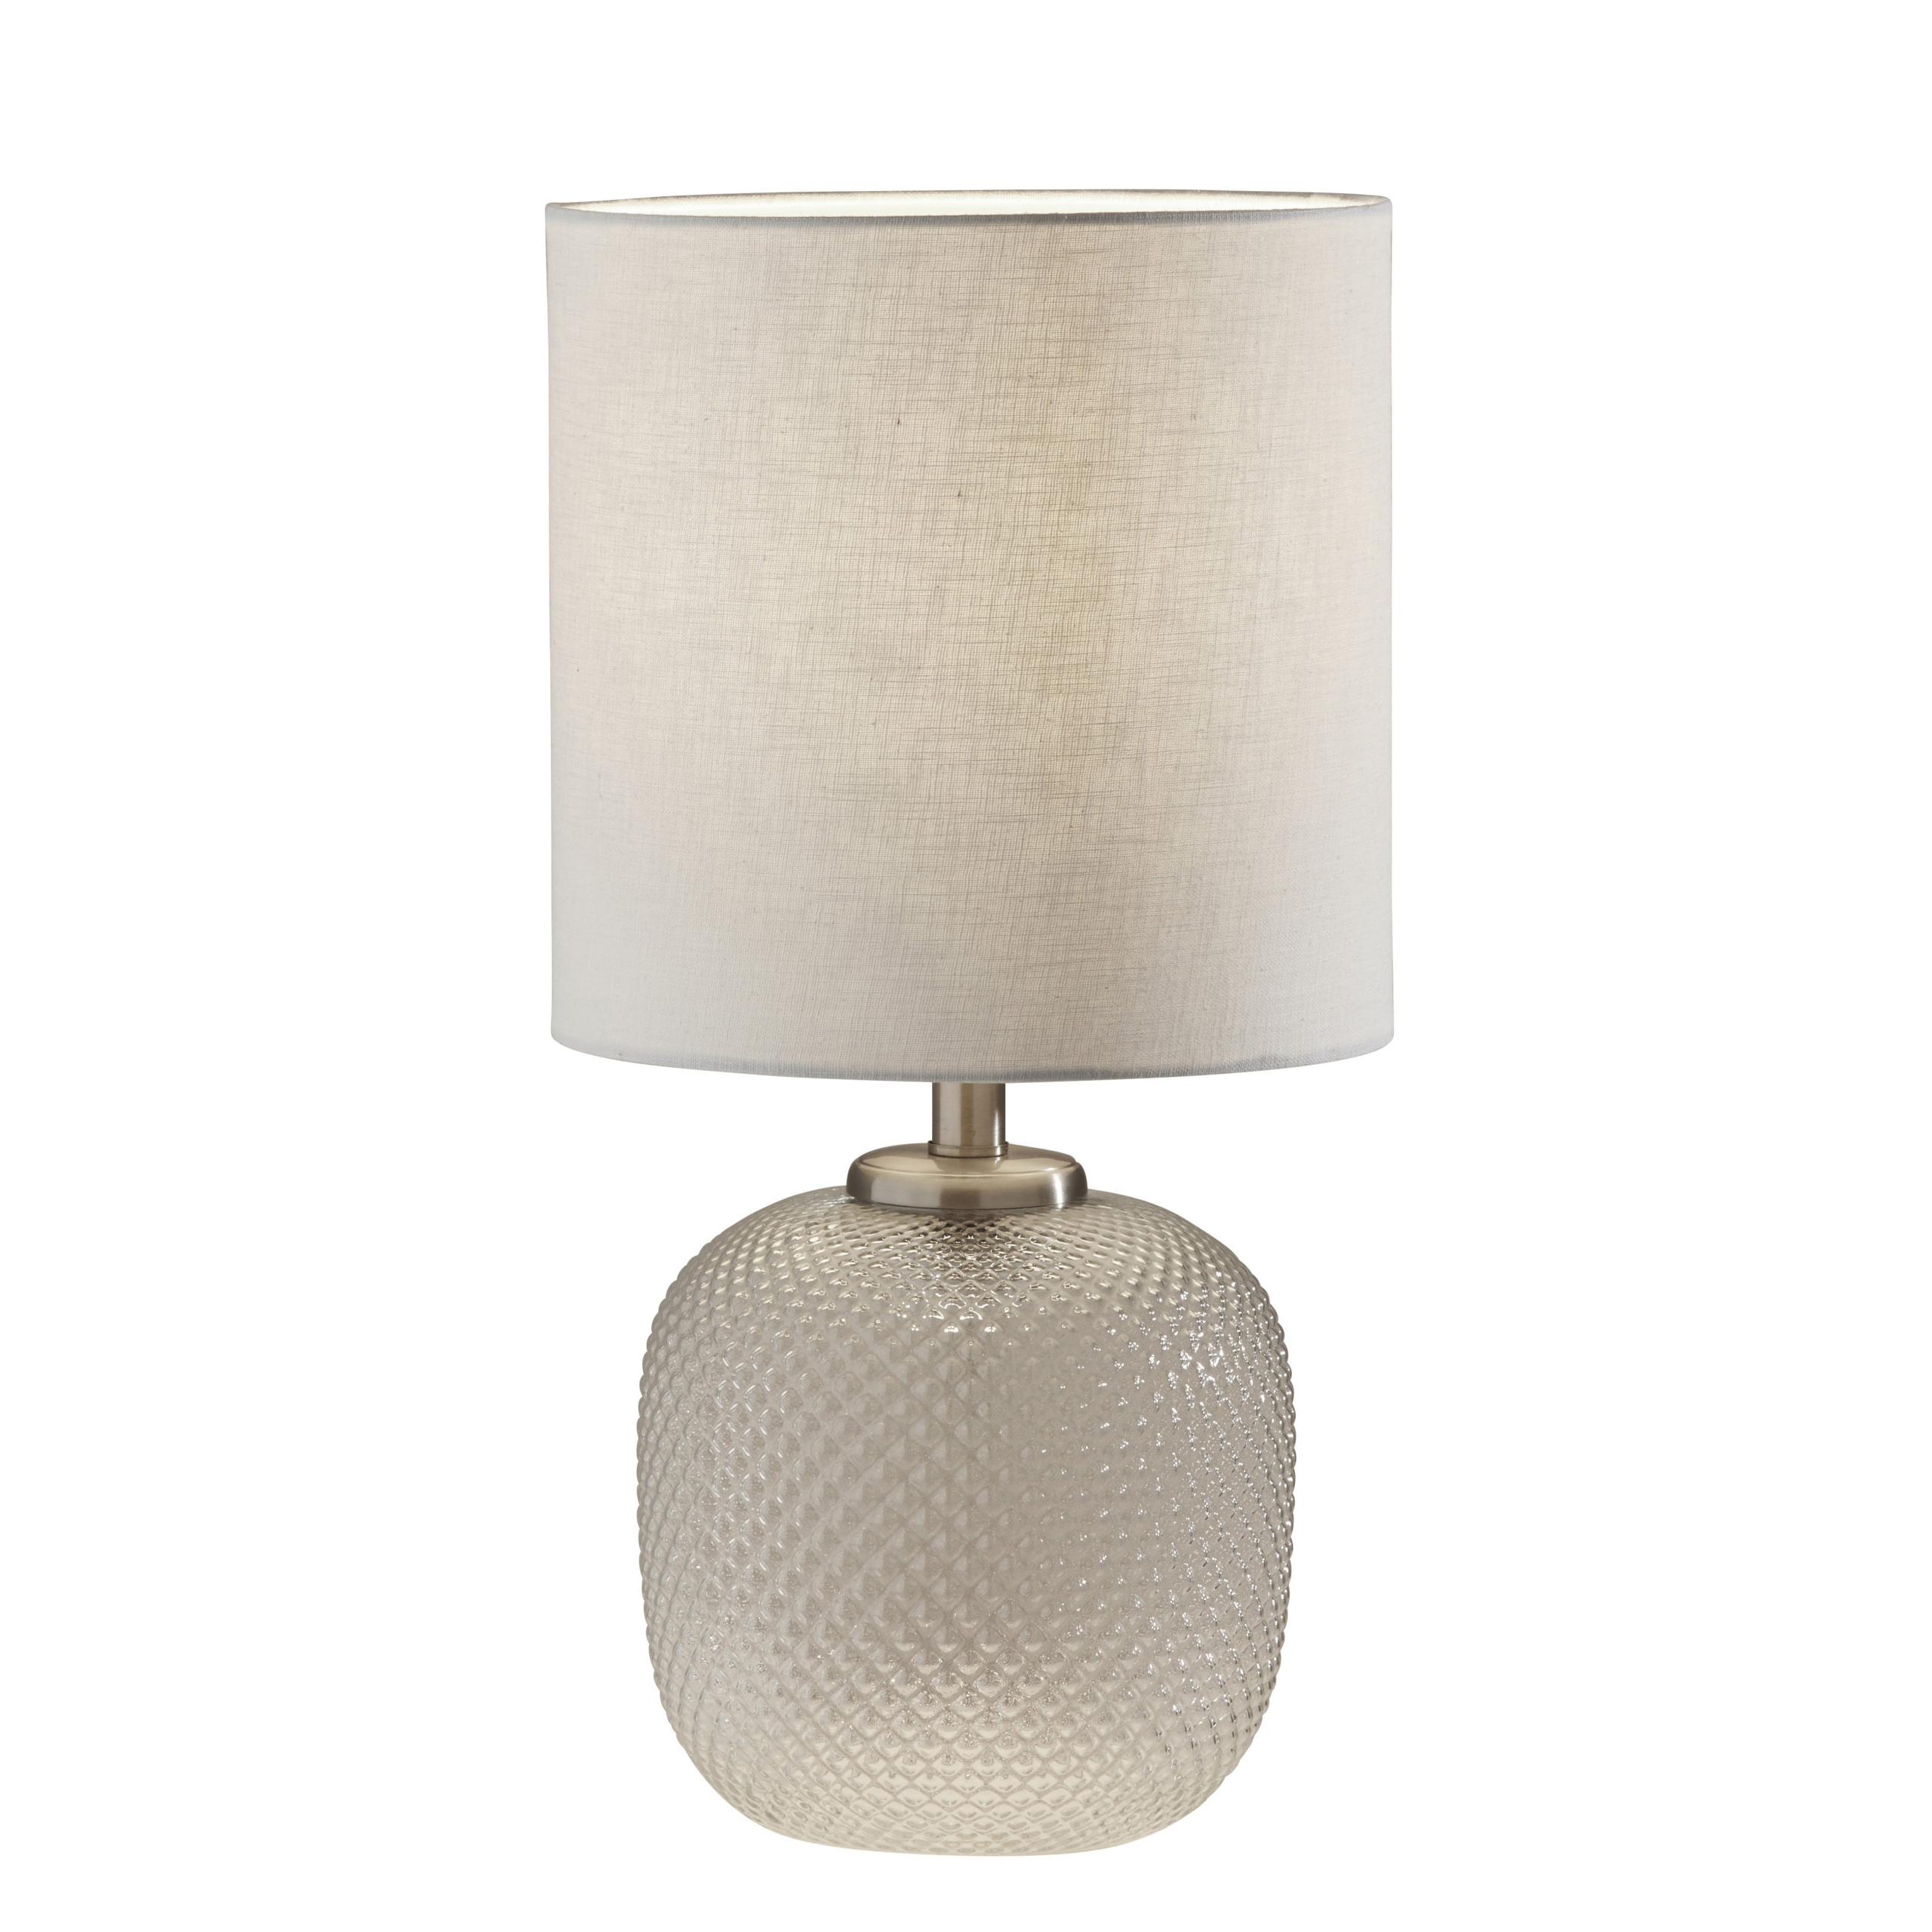 Vivian Table Lamp w. Night Light 1